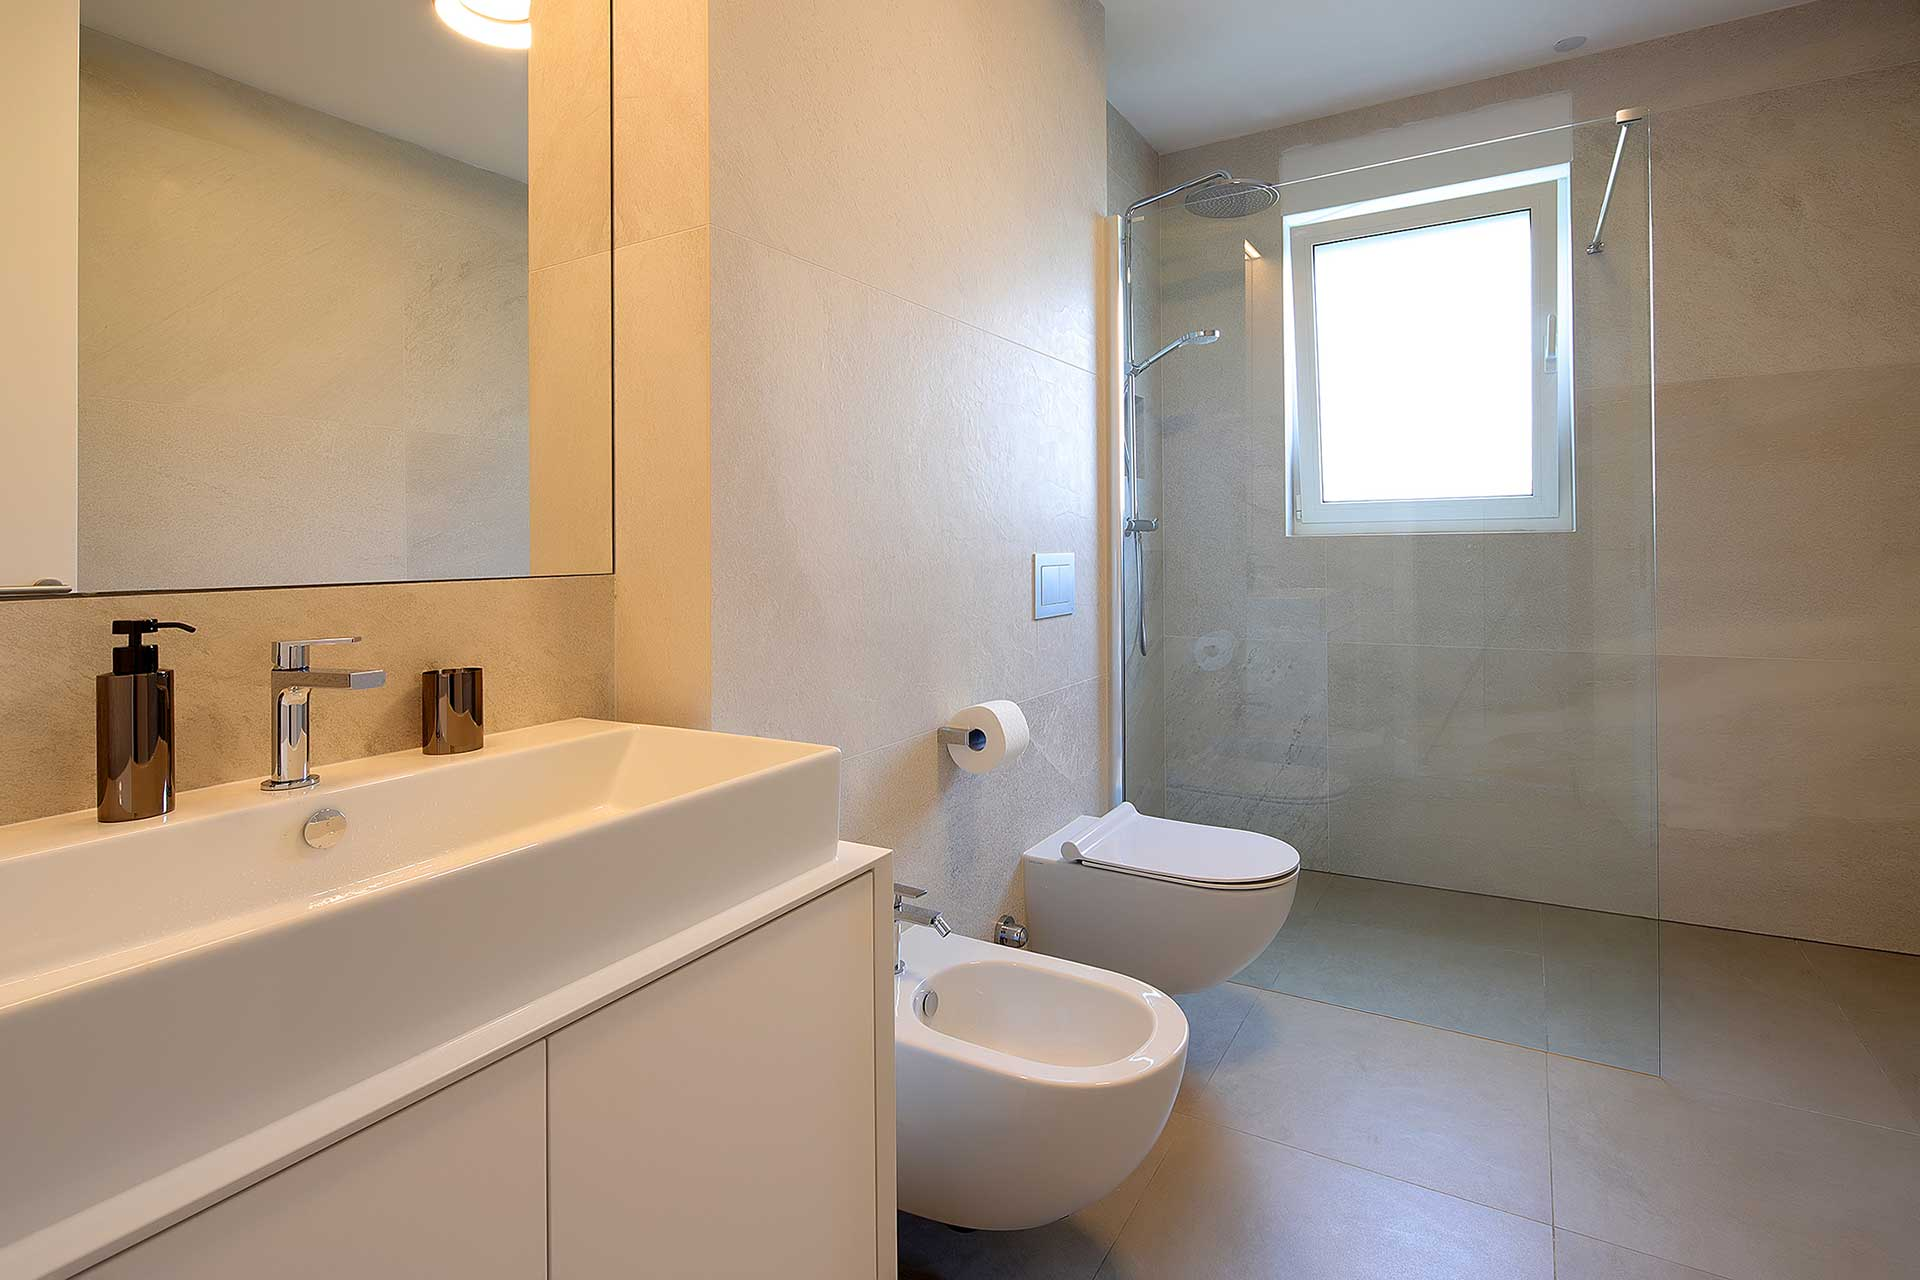 s3-stylish-apartment-100m-from-the-beach-bathroom